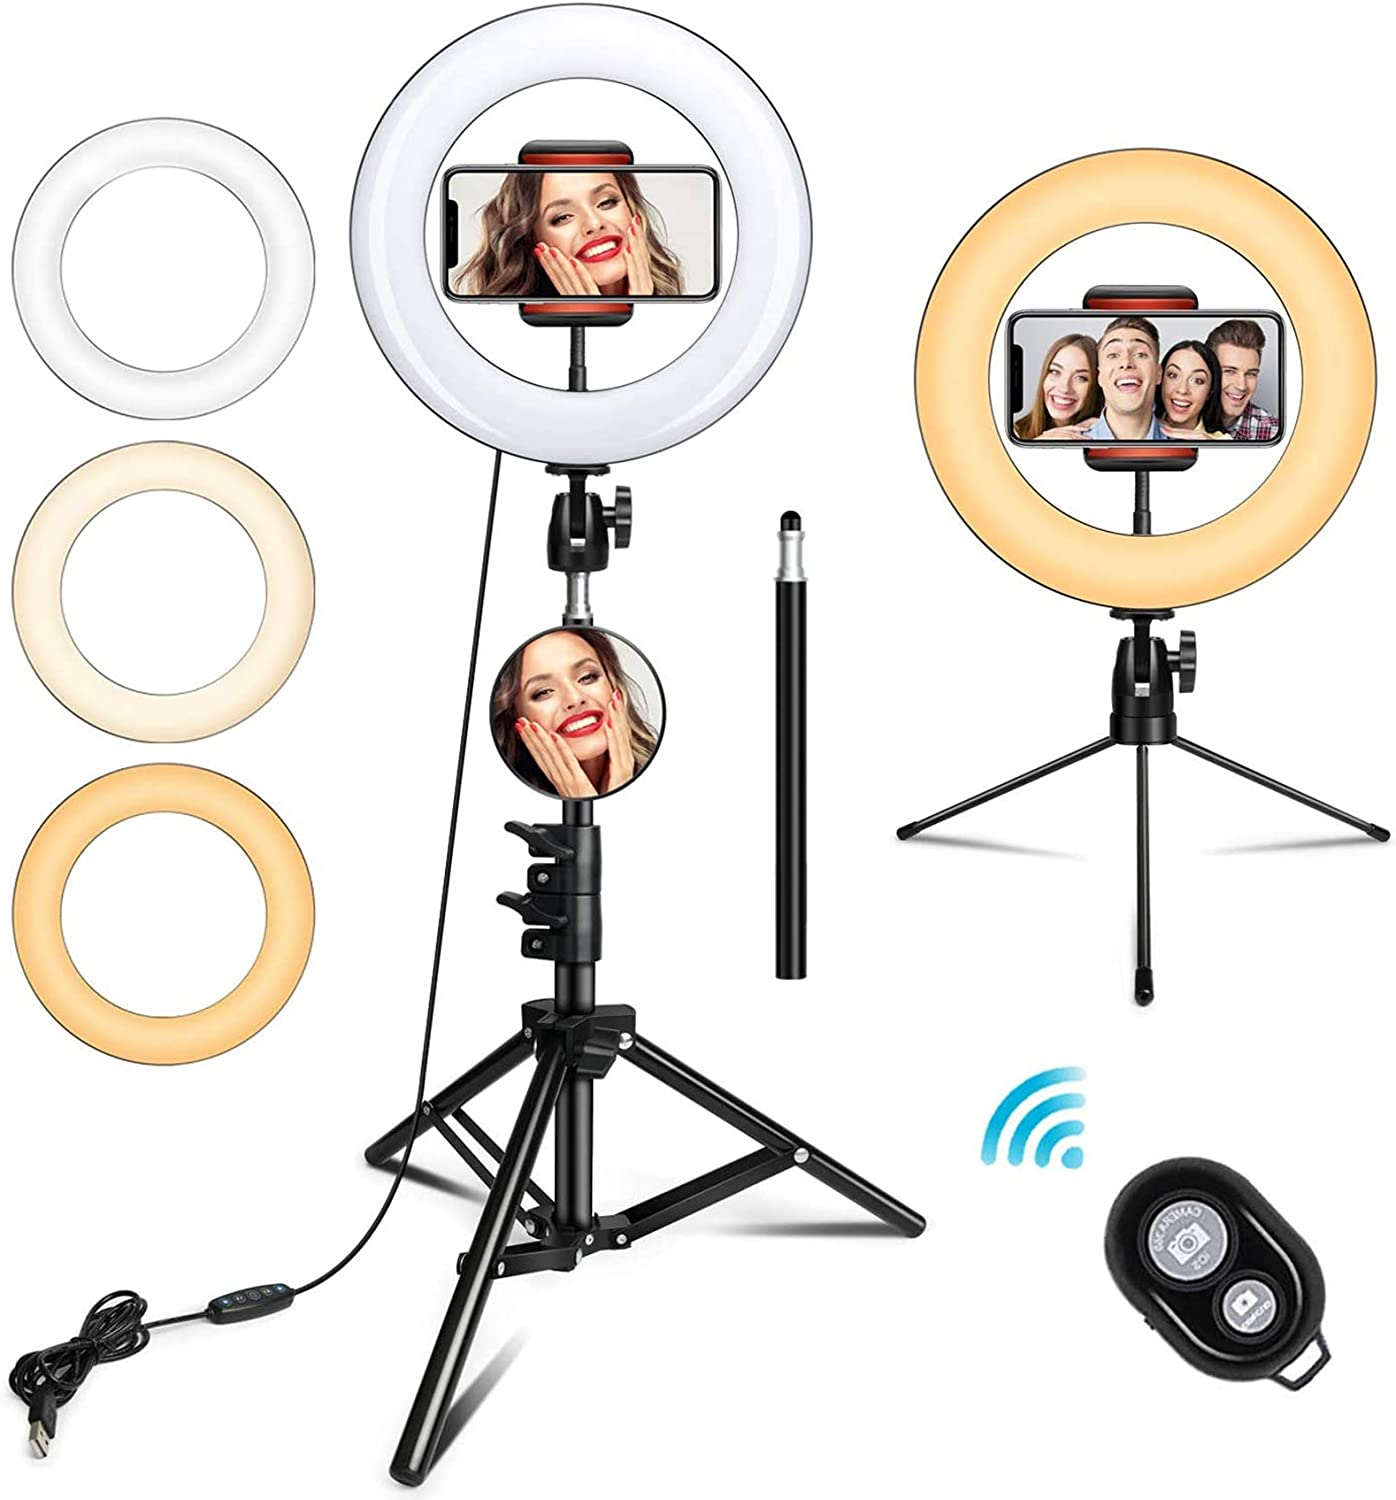 Tenrry LED Ring Light Fill Lighting Dimmable with Tripod Stand for Phone Camera Photo Video Selfie